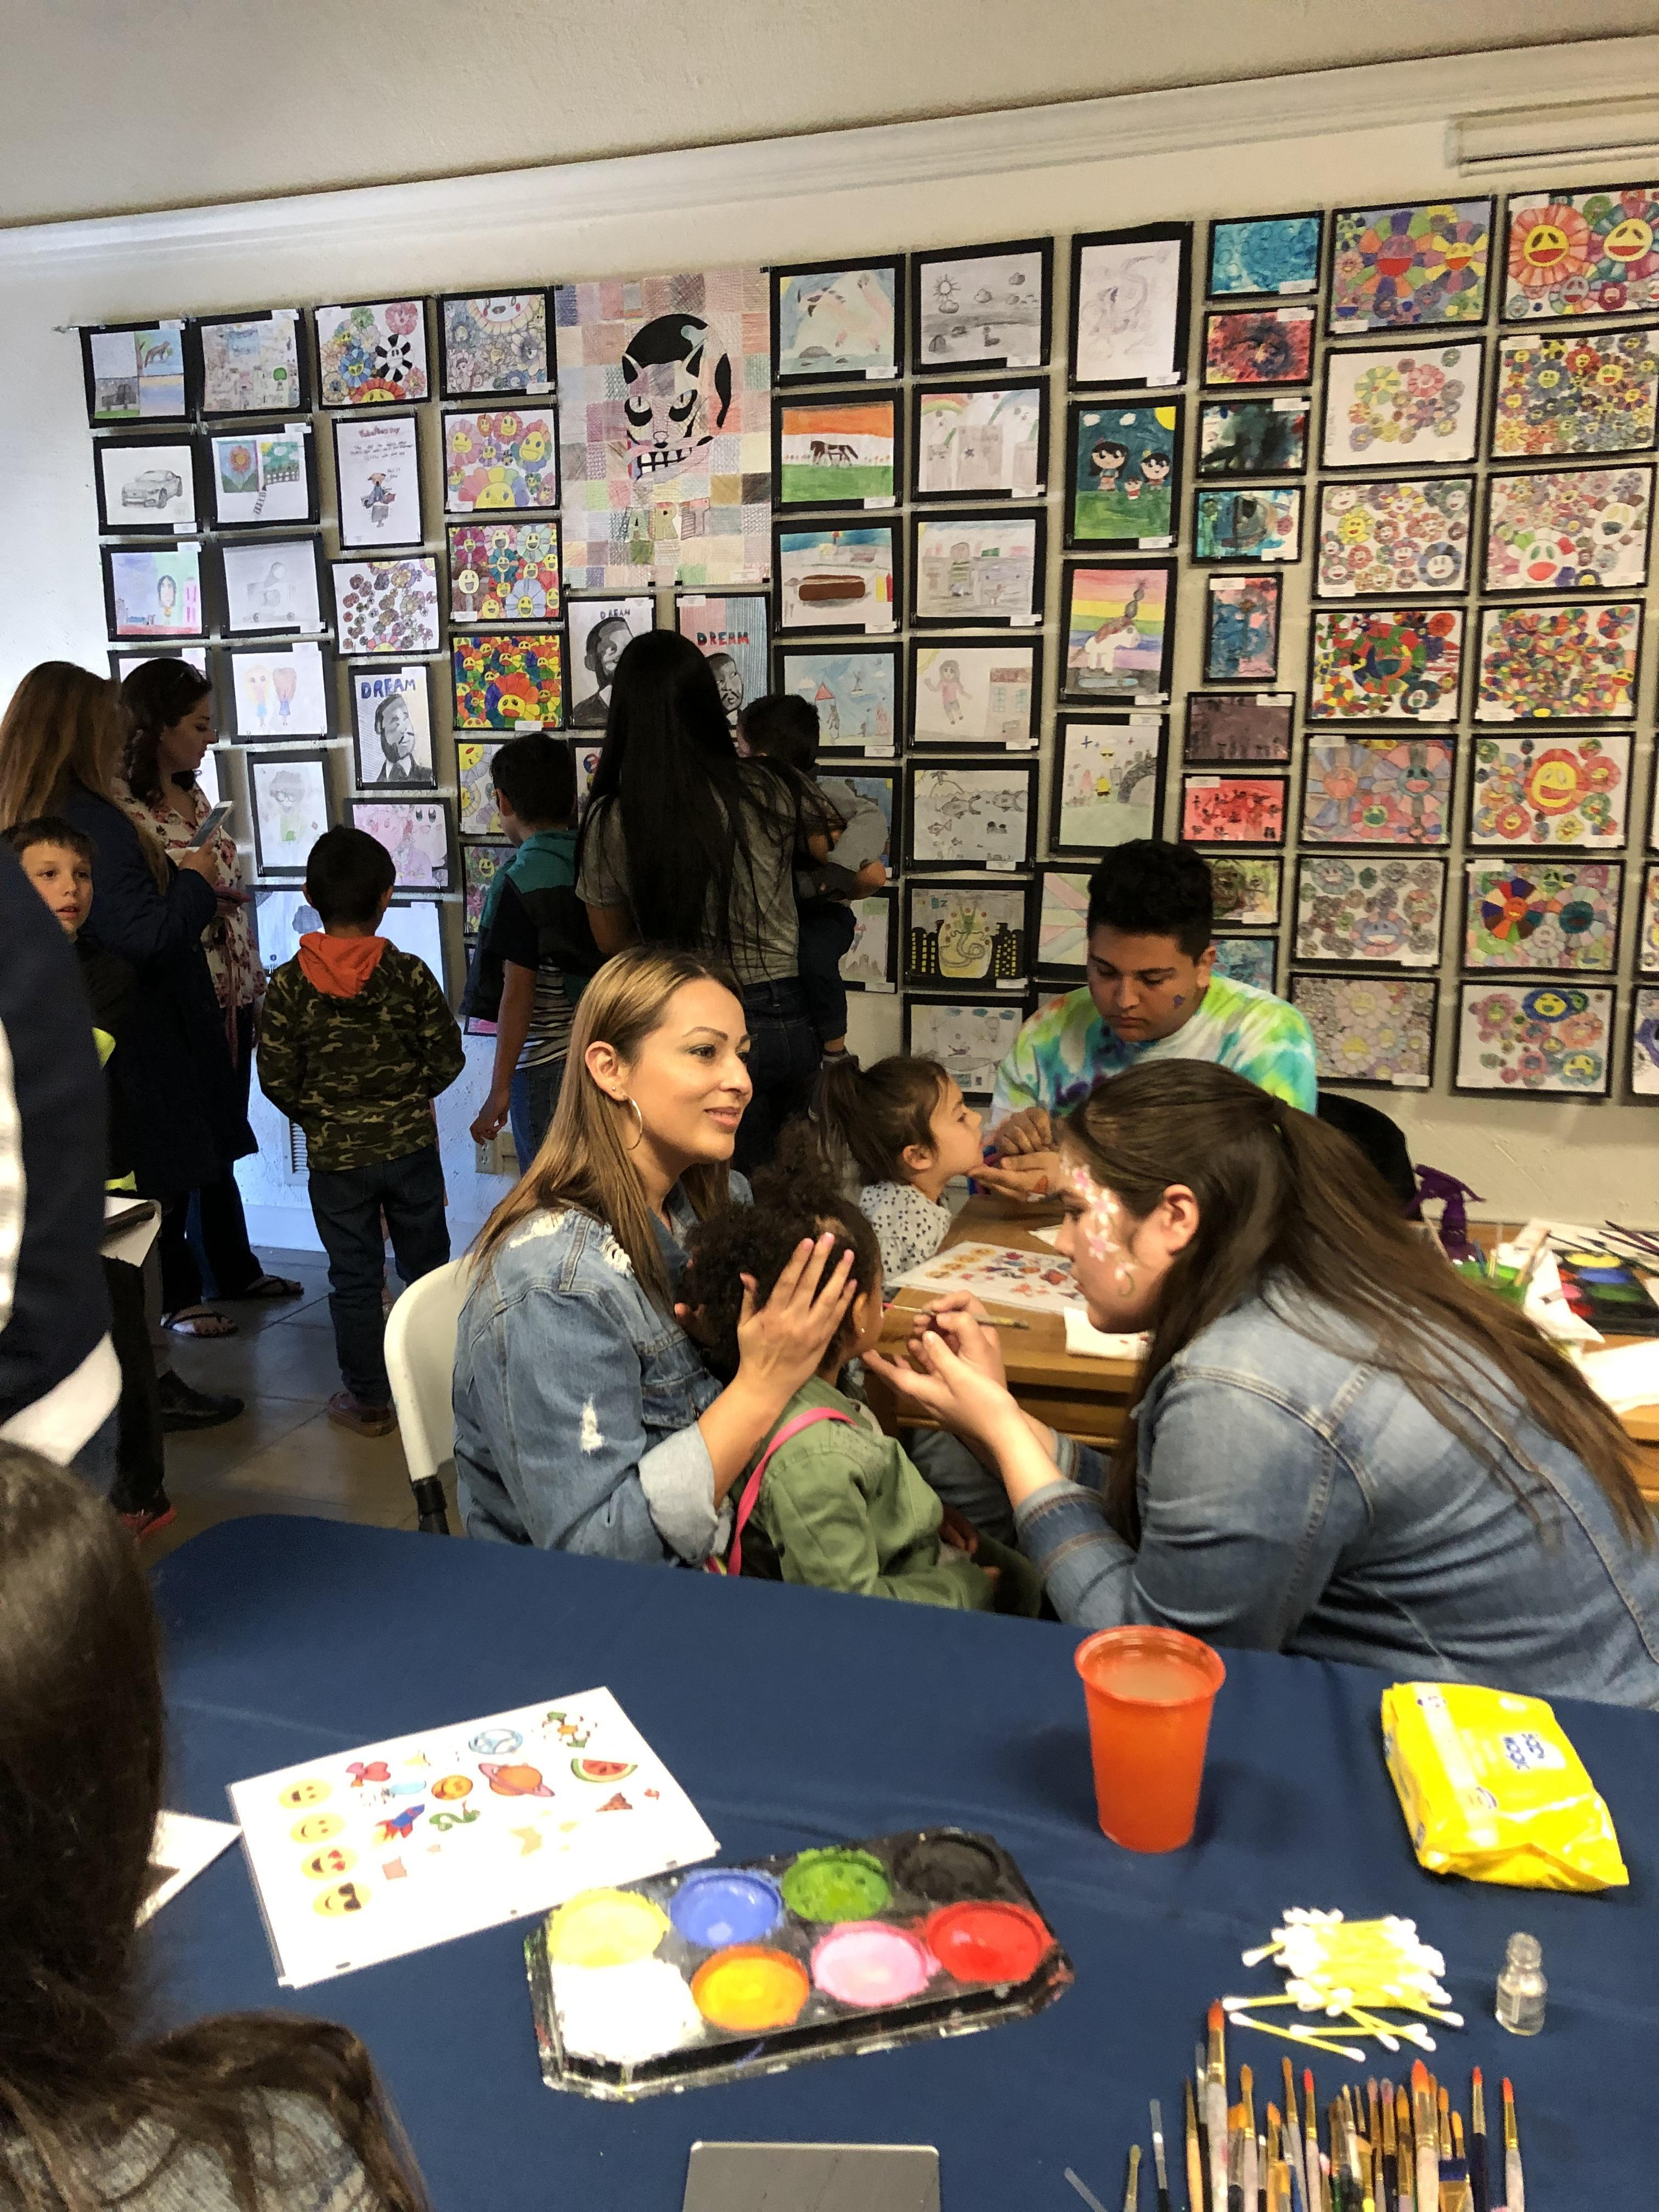 Student having her face painted at the art show